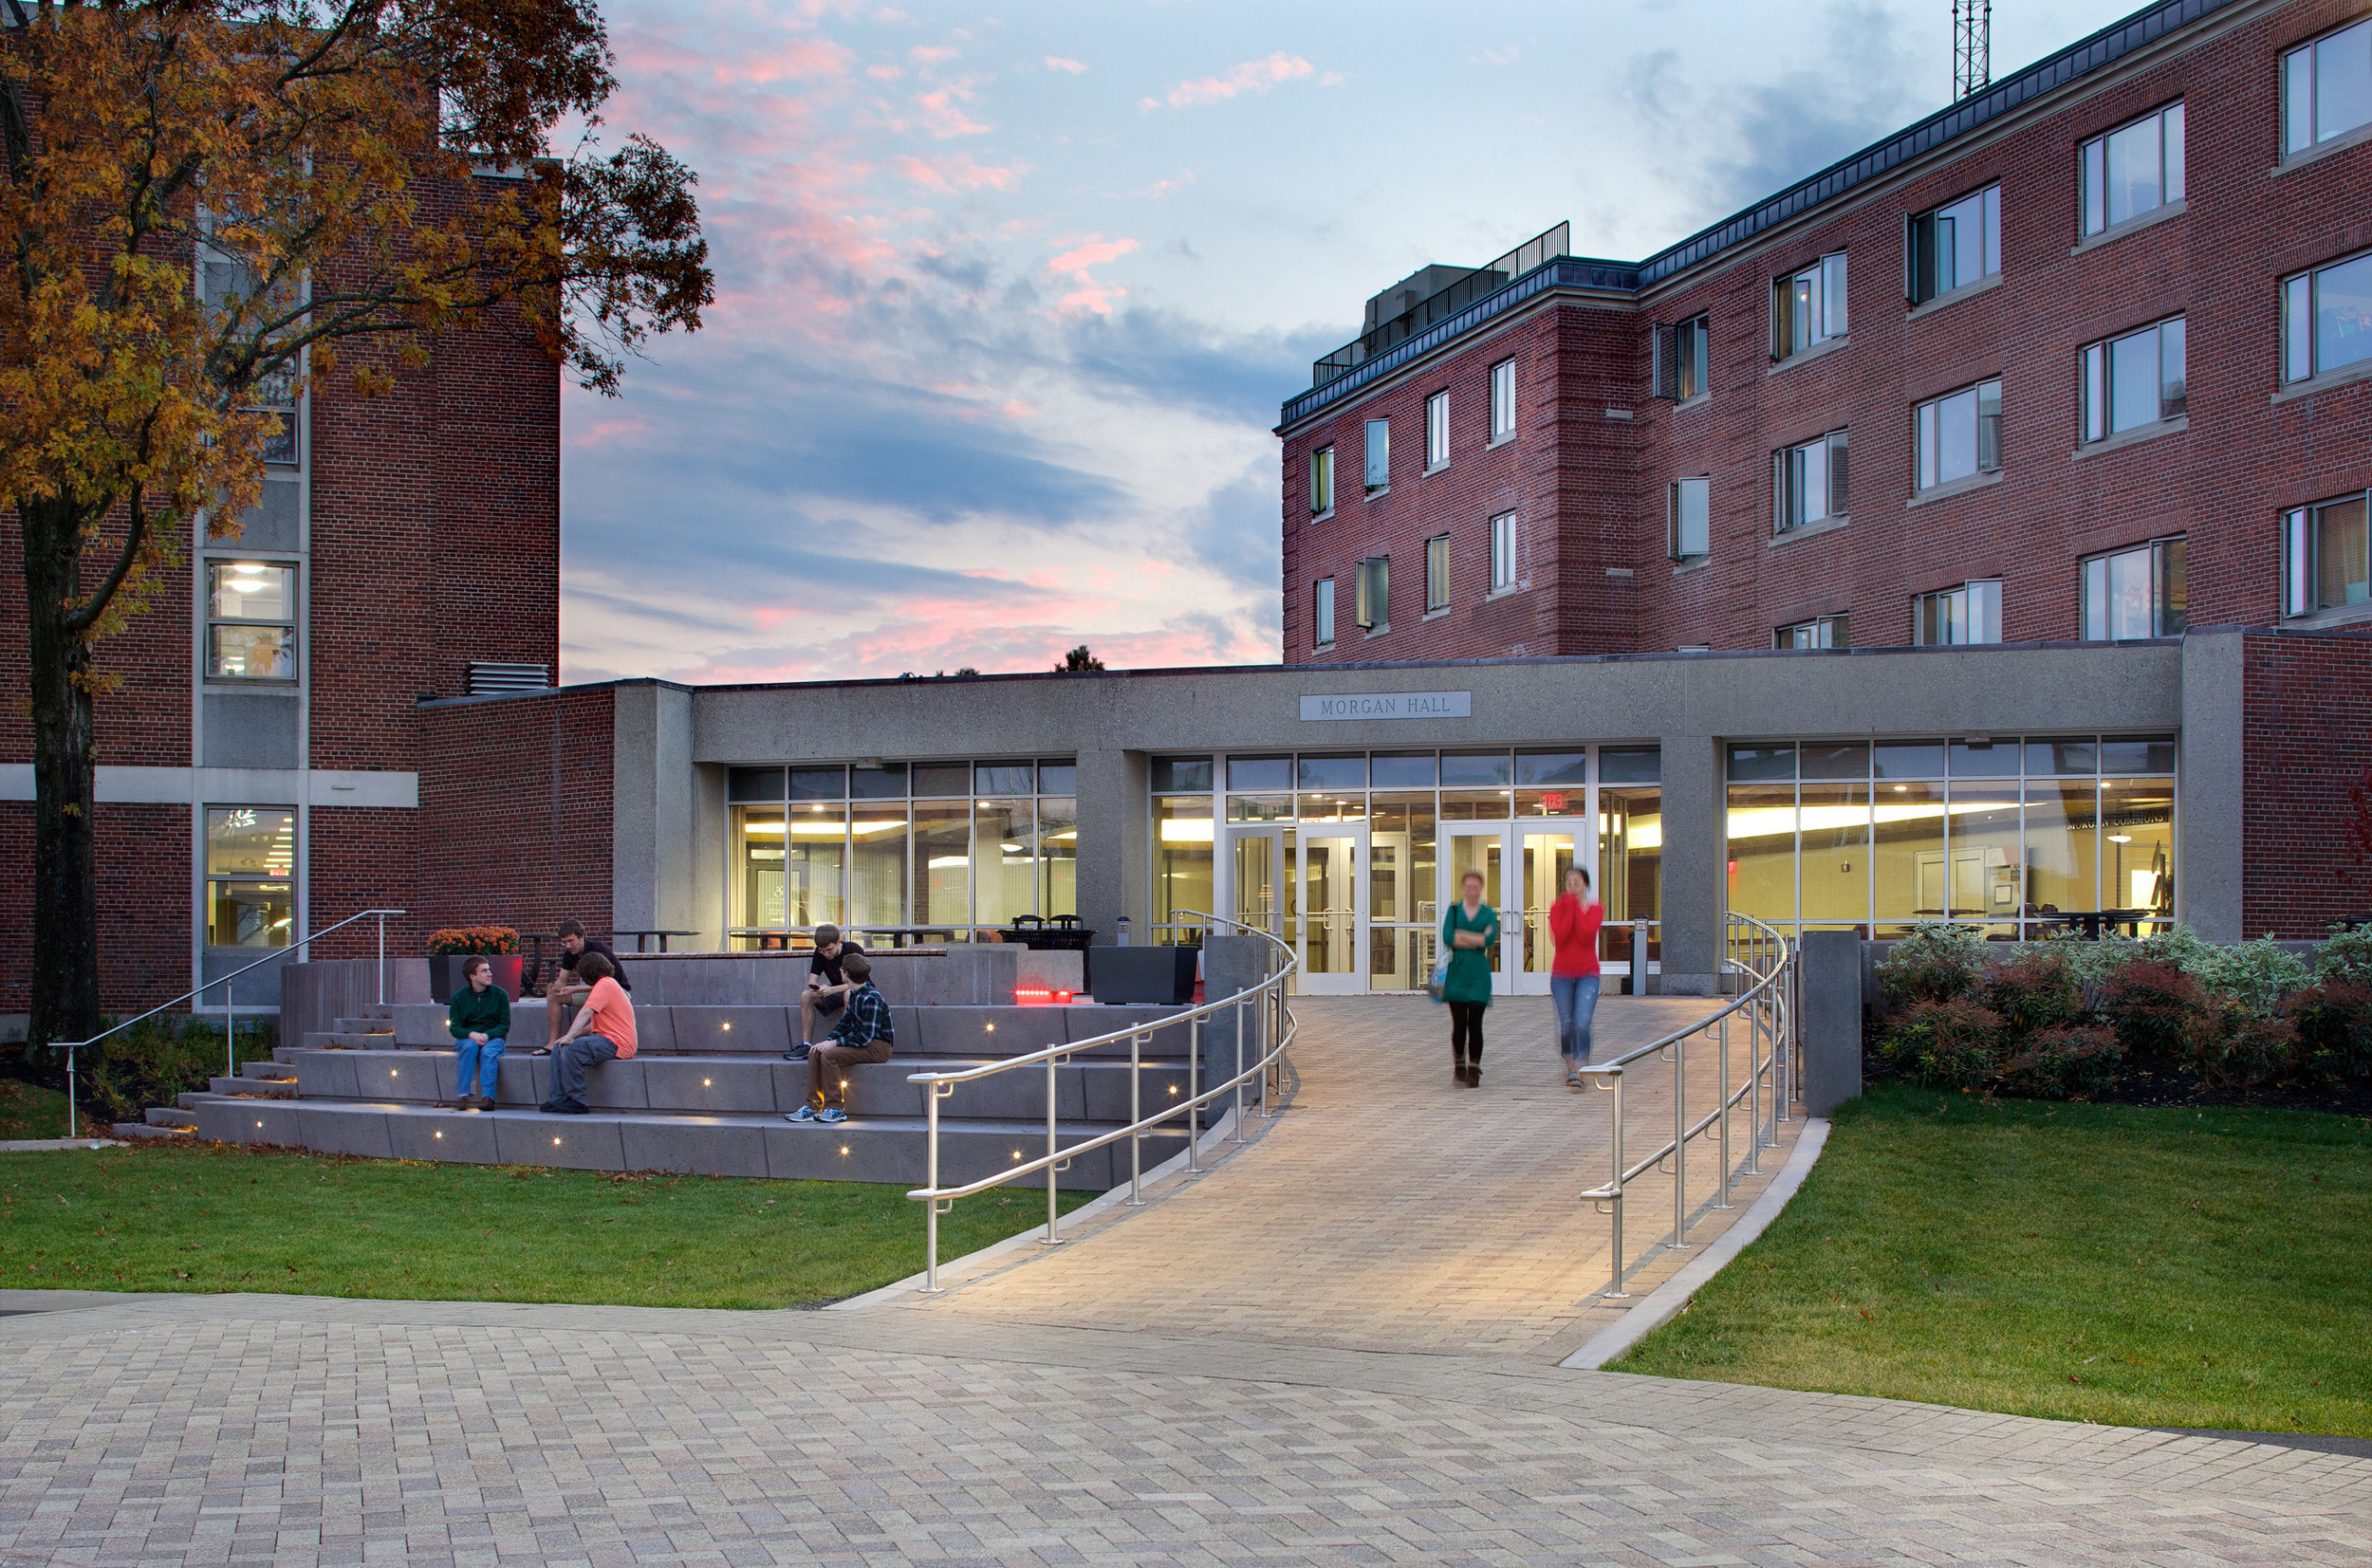 The Wedge provides a welcoming entry to Morgan Hall with terraced seating to engage with the Quad. (Photo by Ed Wonsek)